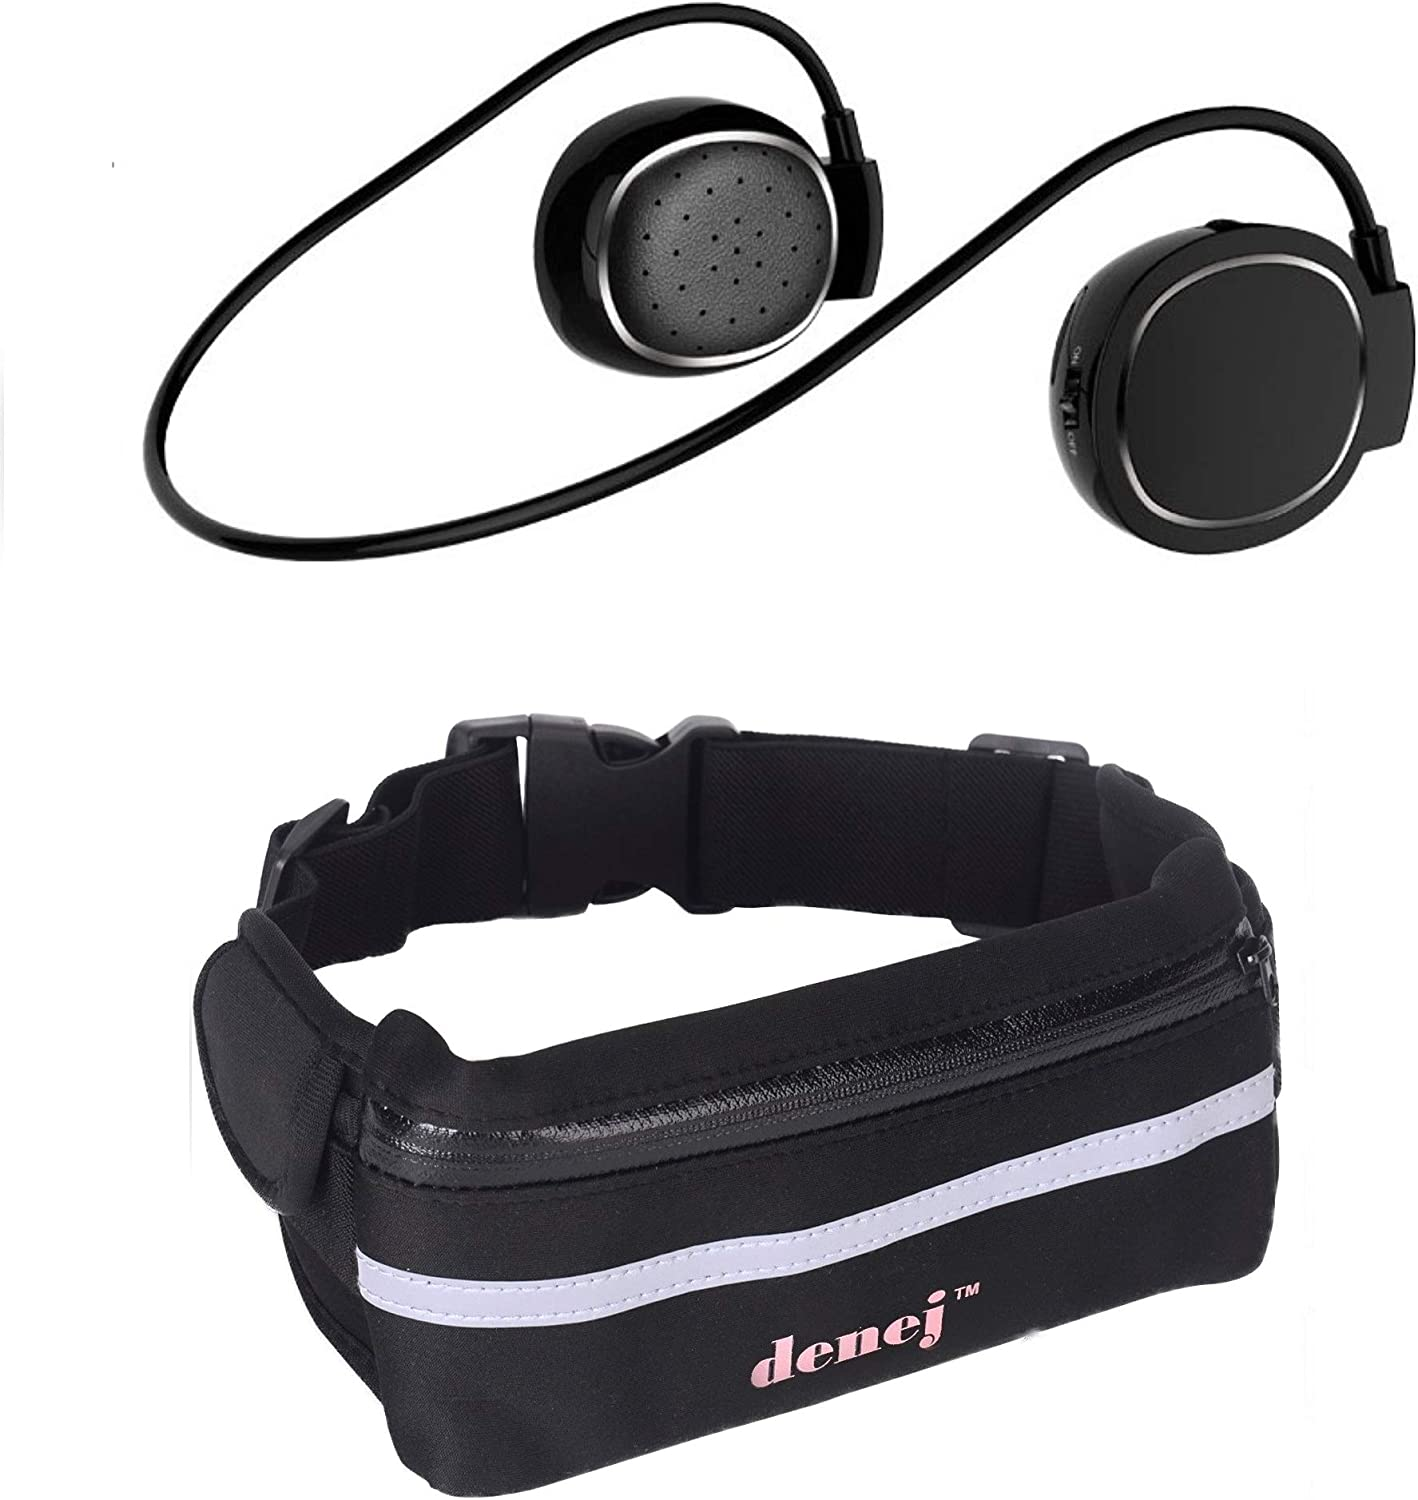 Fanny Pack Phone Holder with Mini On Ear Bluetooth Headphones Set -Swipe Pad Behind the Head Wireless Hands free Headset and Waist Pack Gift Pack Pink